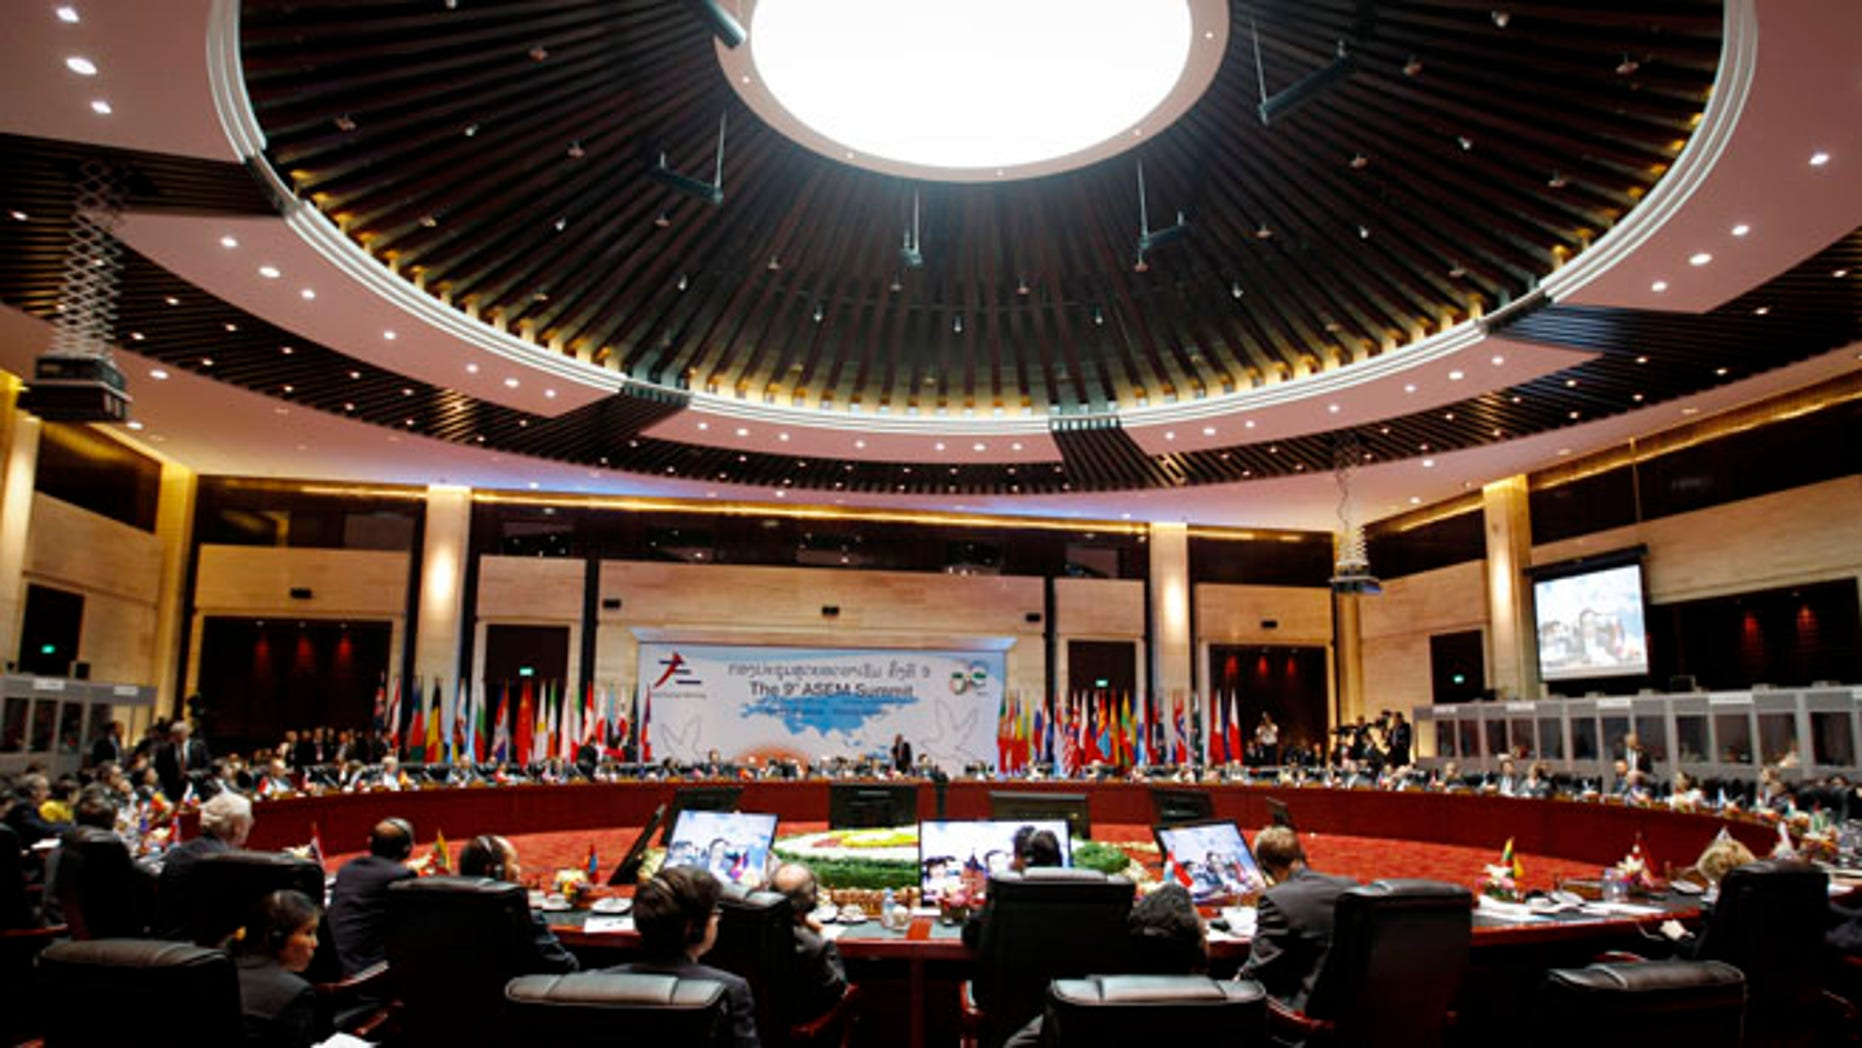 Nov. 6, 2012: European and Asian leaders take part in the closing ceremony for the ASEM Summit in Vientiane, Laos.